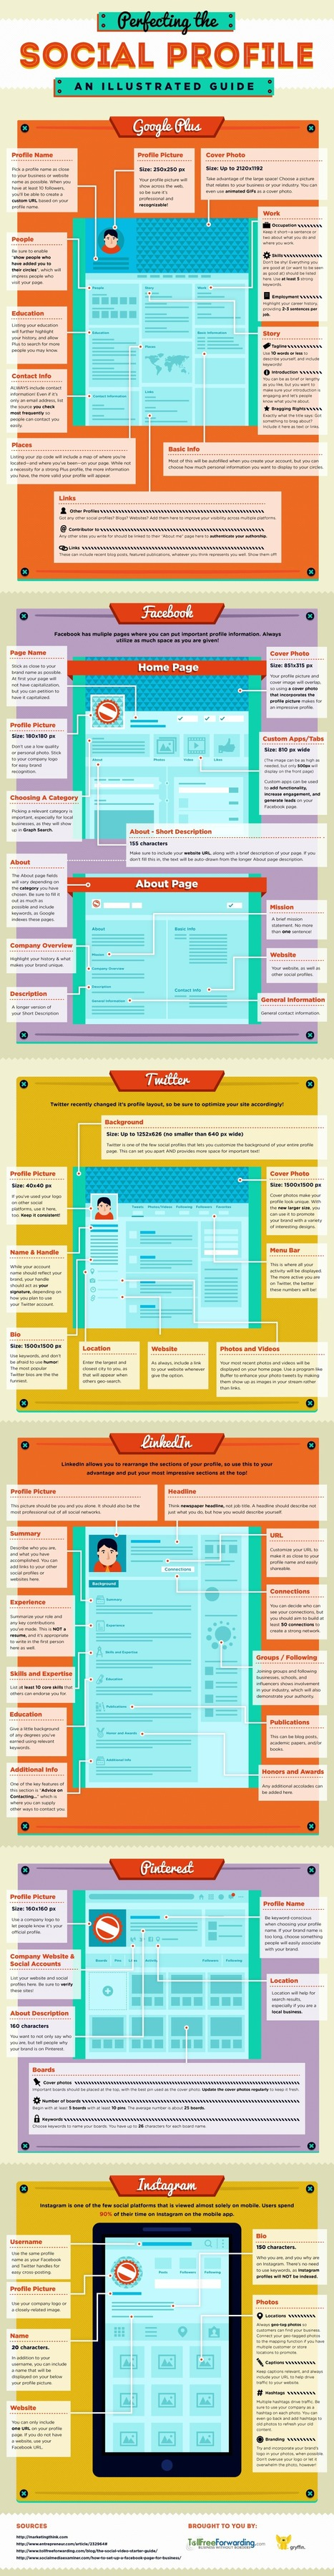 Facebook, Google+, Twitter, etc. - Perfecting Your Social Media Profiles - #infographic | Pedalogica: educación y TIC | Scoop.it